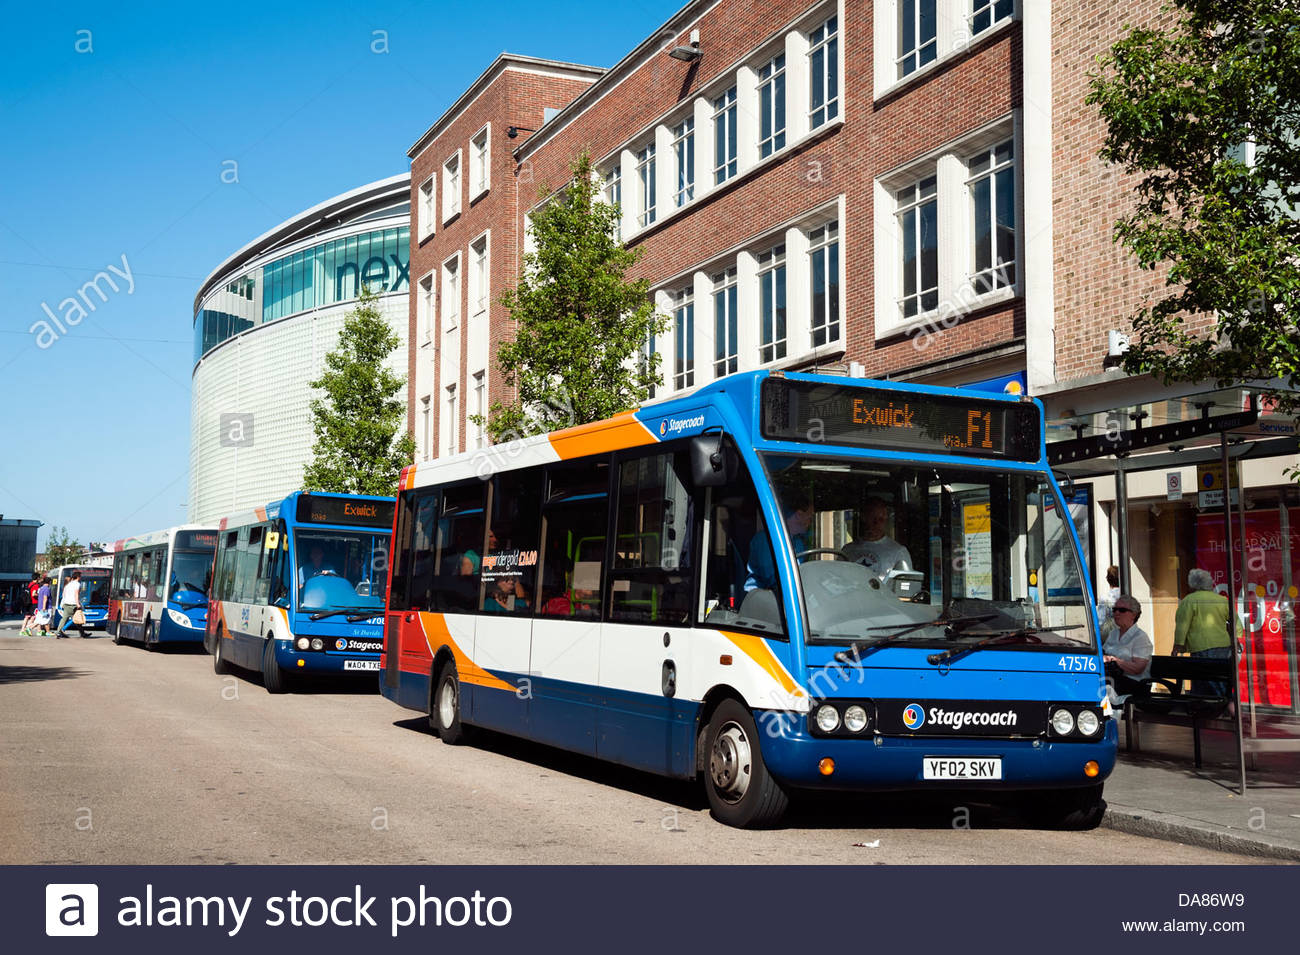 Exeter city centre, Devon, UK. Buses waiting to pick up people. - Stock Image